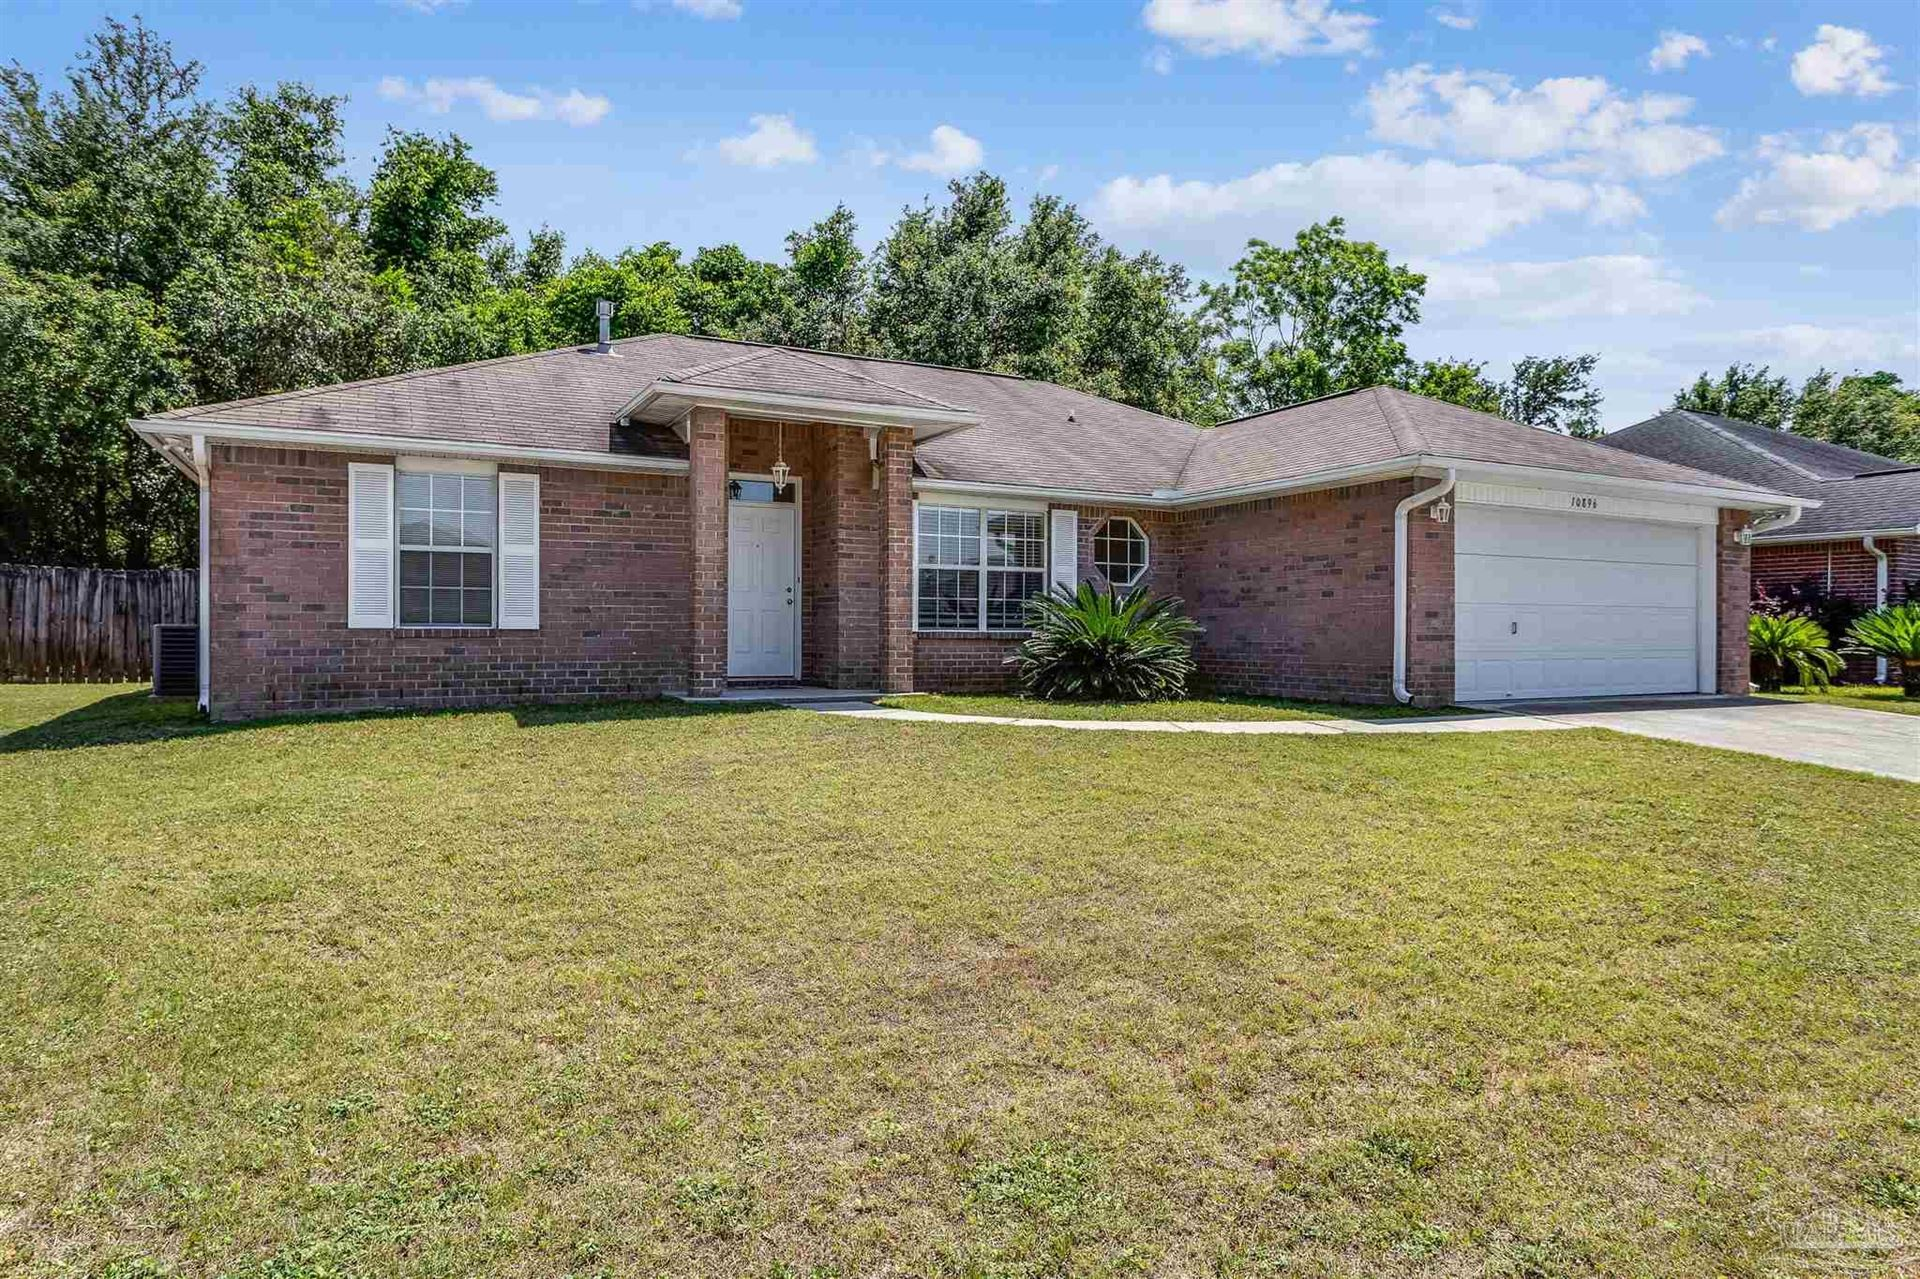 10896 COUNTRY OSTRICH DR, Pensacola, FL 32534 - MLS#: 589549